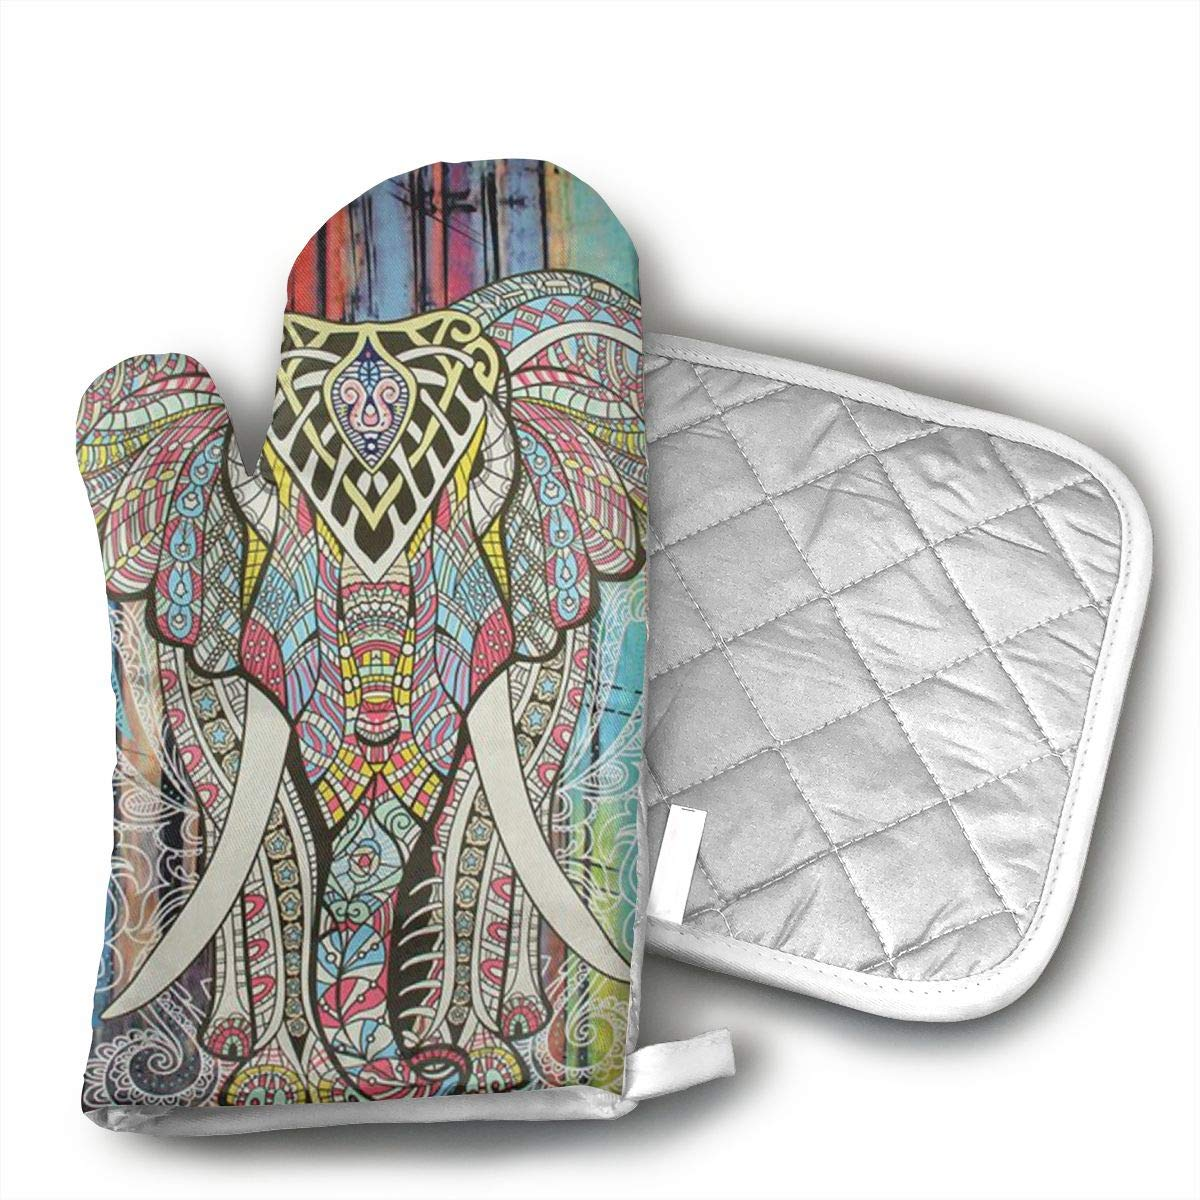 Wiqo9 Elephant Oven Mitts and Pot Holders Kitchen Mitten Cooking Gloves,Cooking, Baking, BBQ.